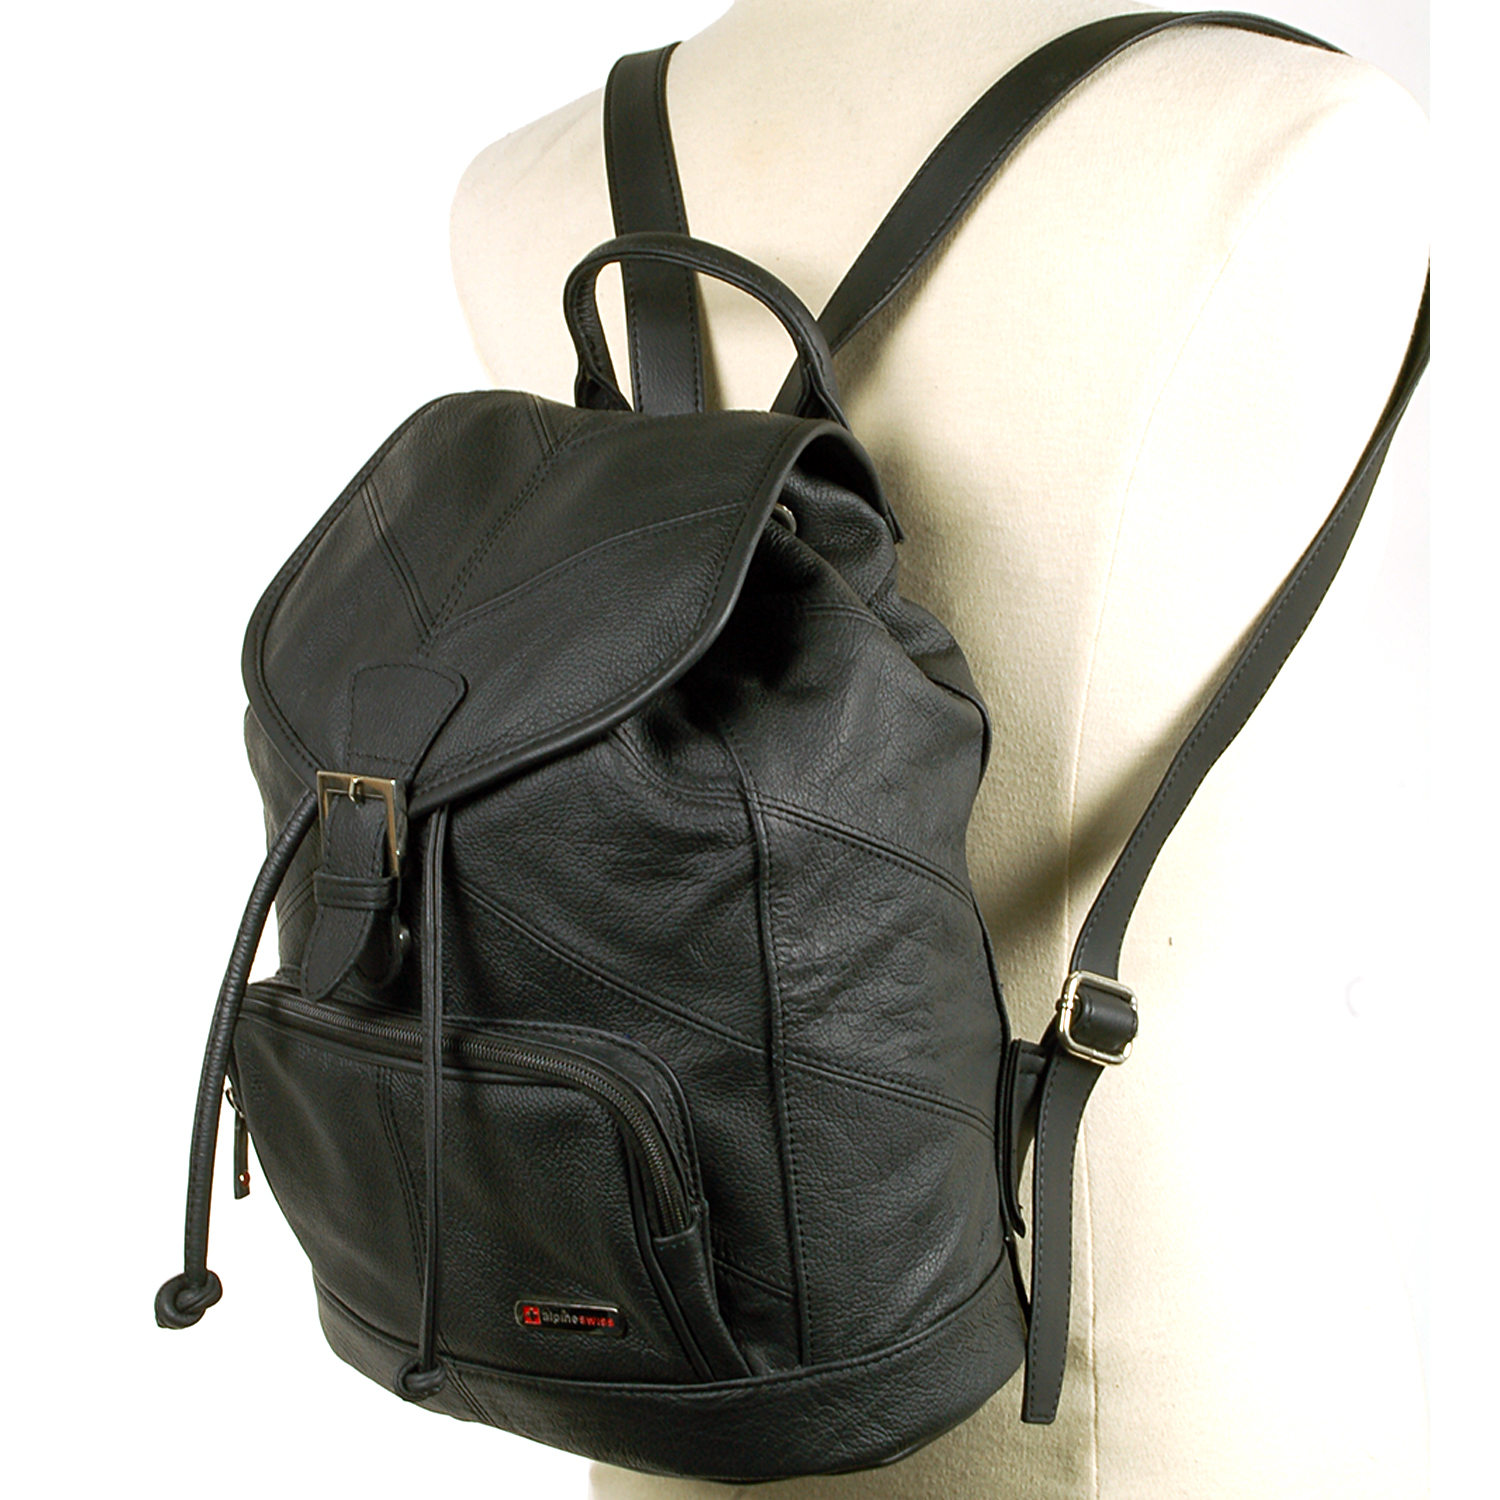 Anizer Backpack Purse Best Image Ccdbb